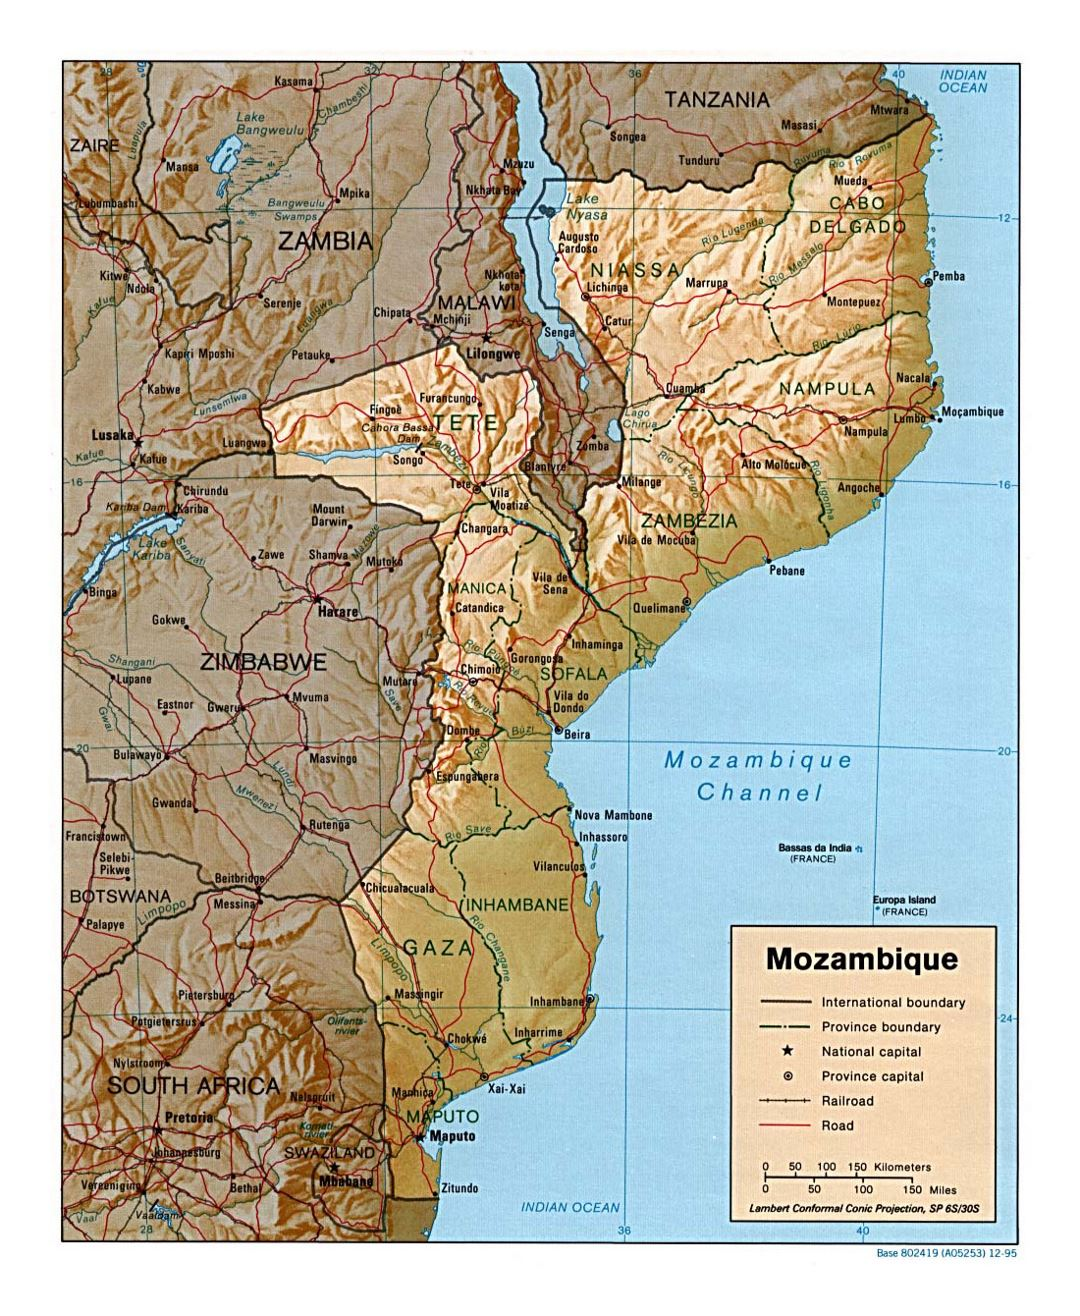 Detailed political and administrative map of Mozambique with relief, roads, railroads and major cities - 1995